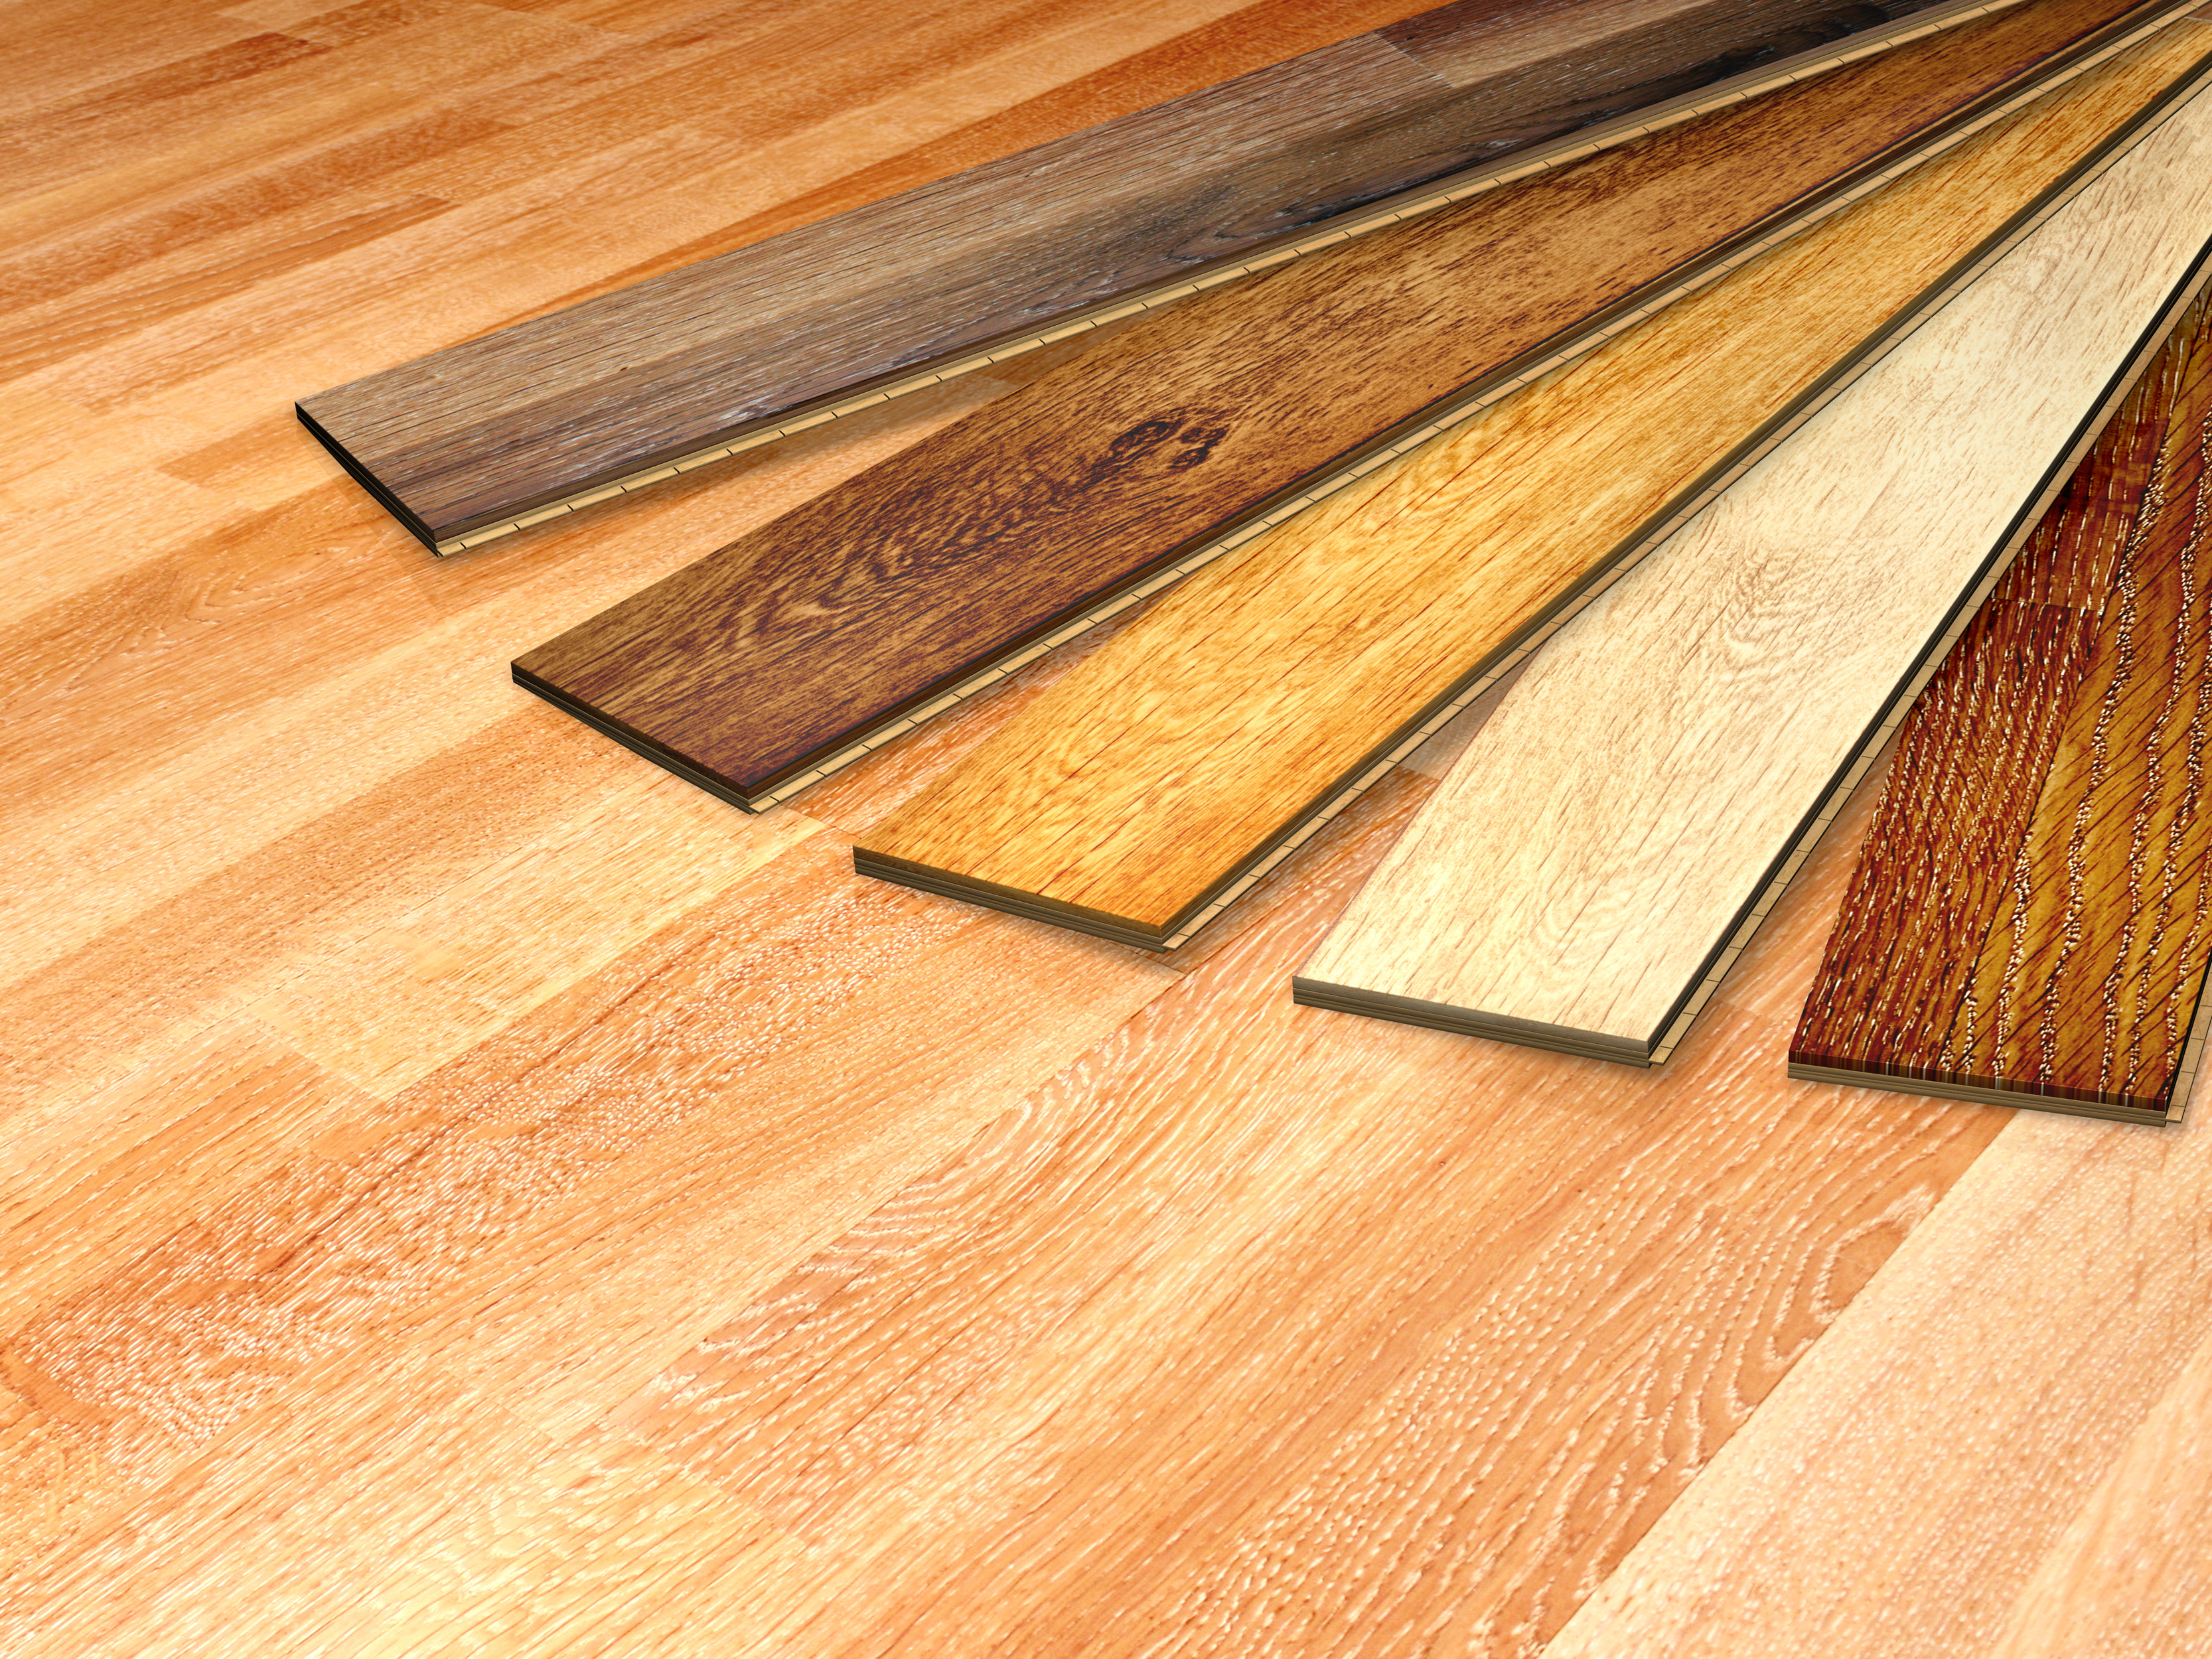 The Benefits of Choosing Solid Wood Flooring